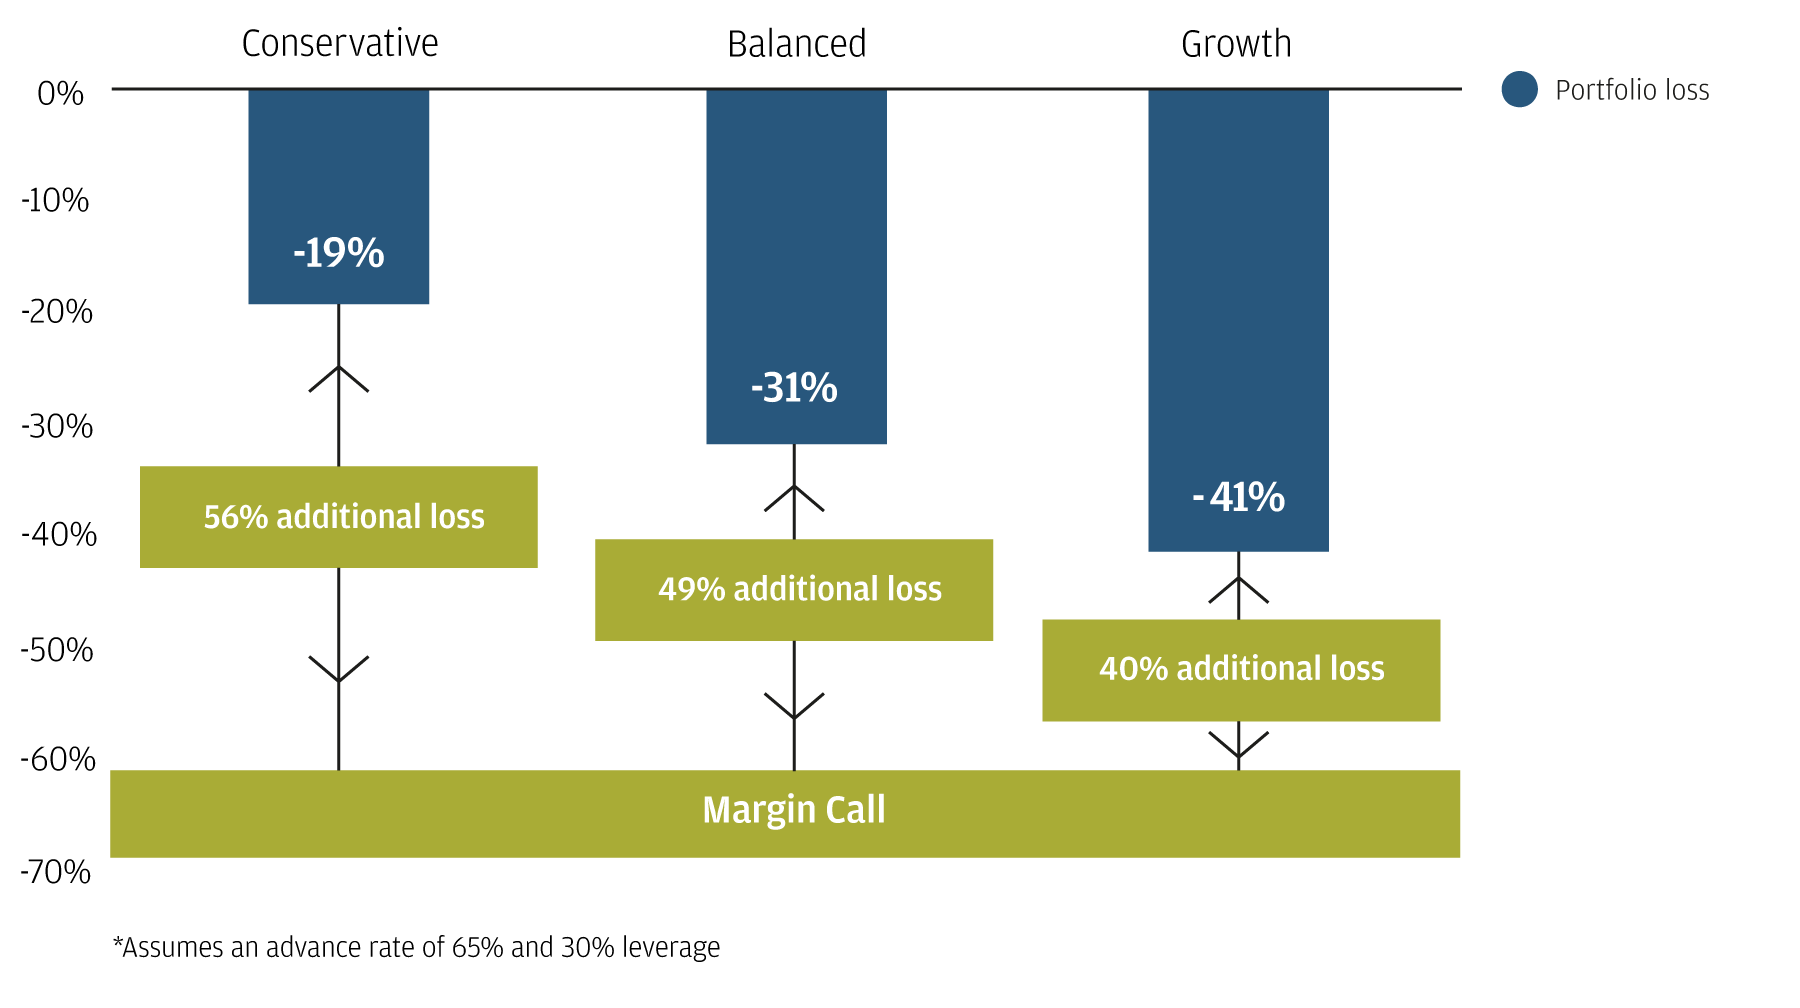 This graphic demonstrates that with the use of modest leverage, the risk of margin call and being forced to repay at times of stress is reduced.